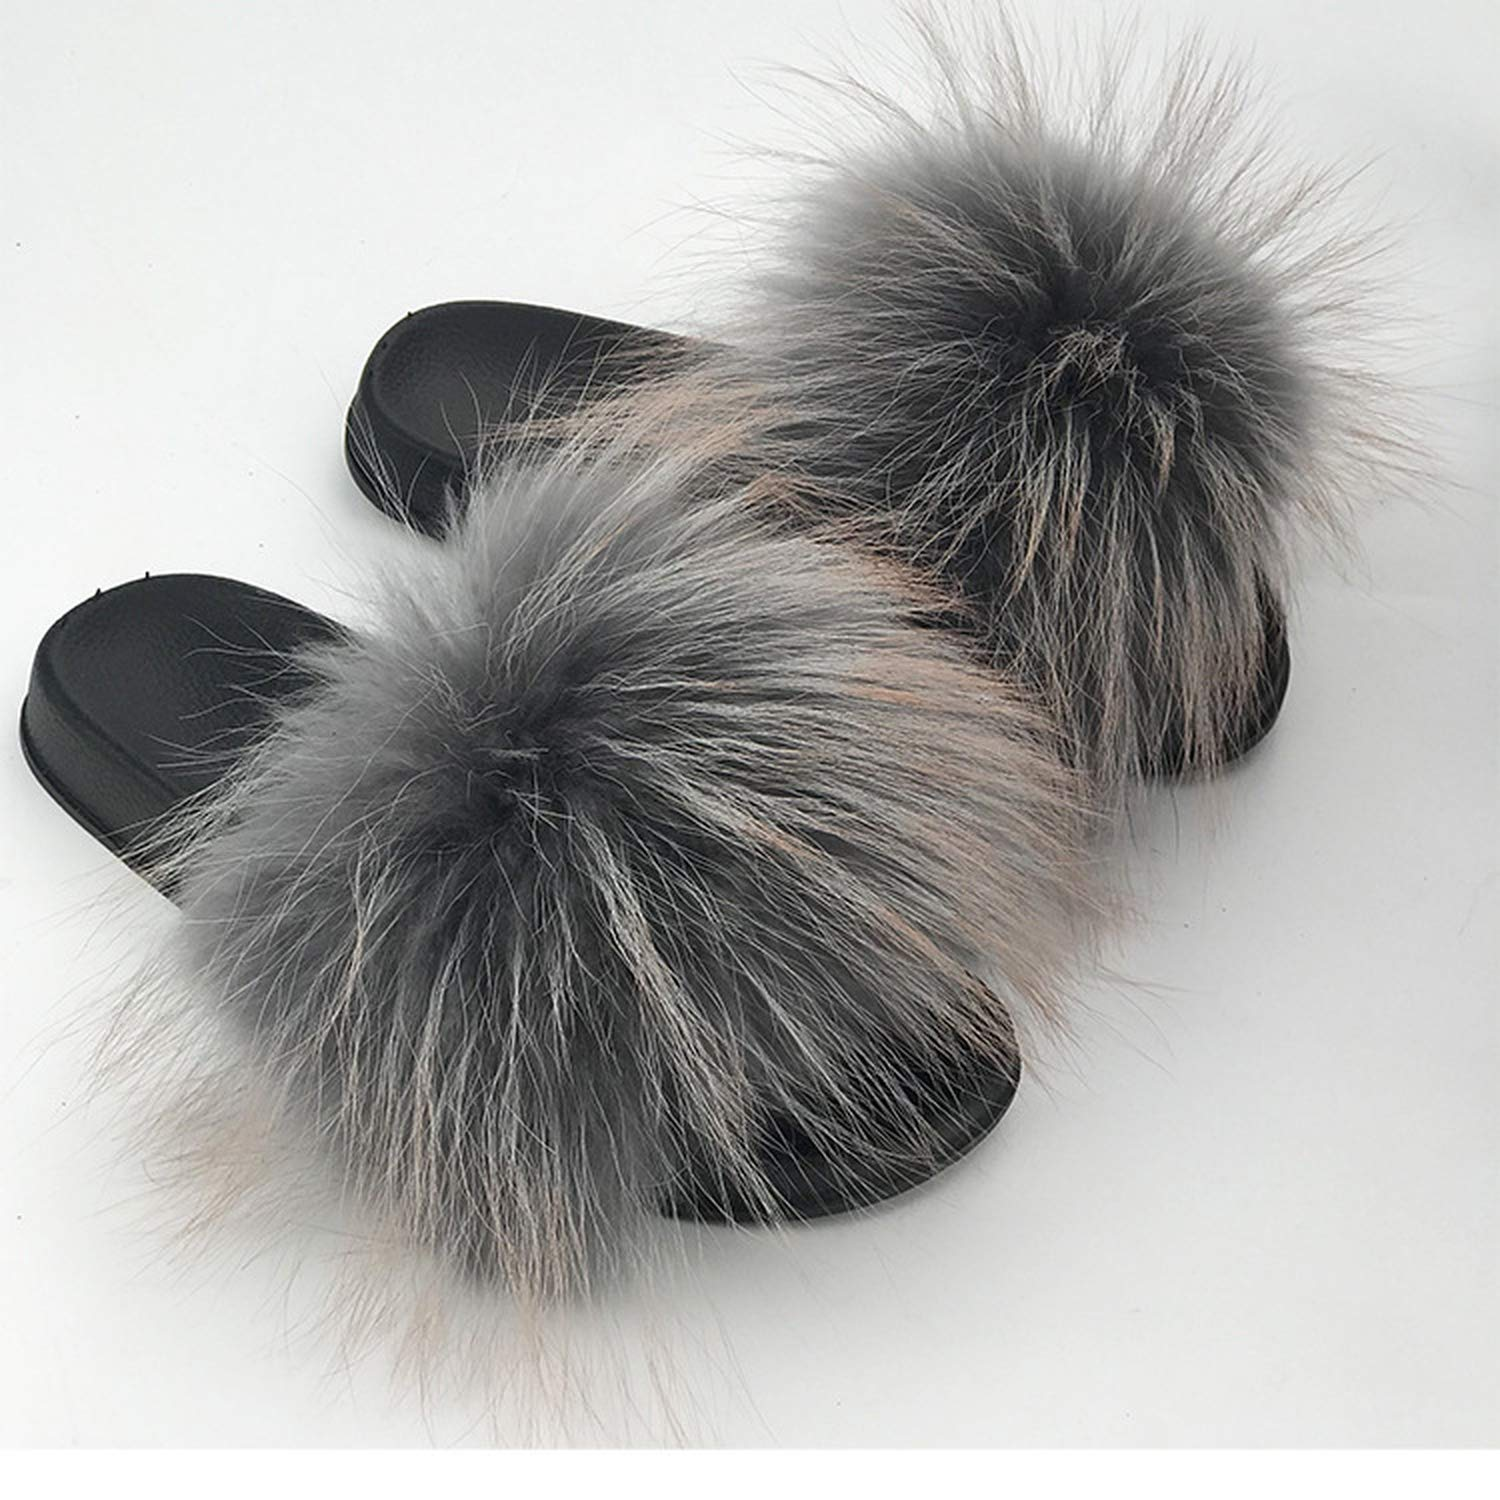 28 Colors Real Fur Slippers Women Fox Fluffy Sliders Comfort with Feathers Furry Summer Flats Sweet Ladies Shoes Plus Size 36-45,18,91